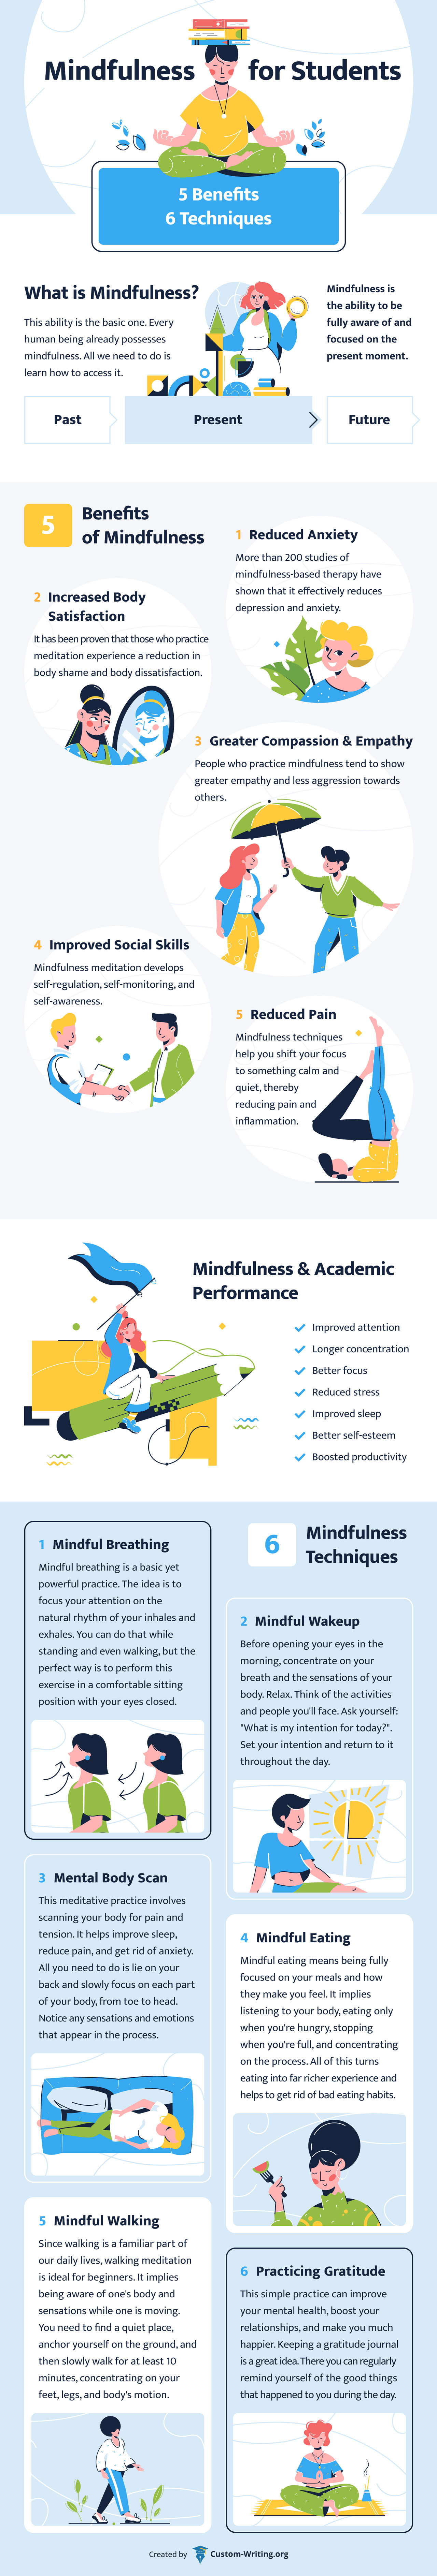 Mindfulness for Students [Infographic] | ecogreenlove